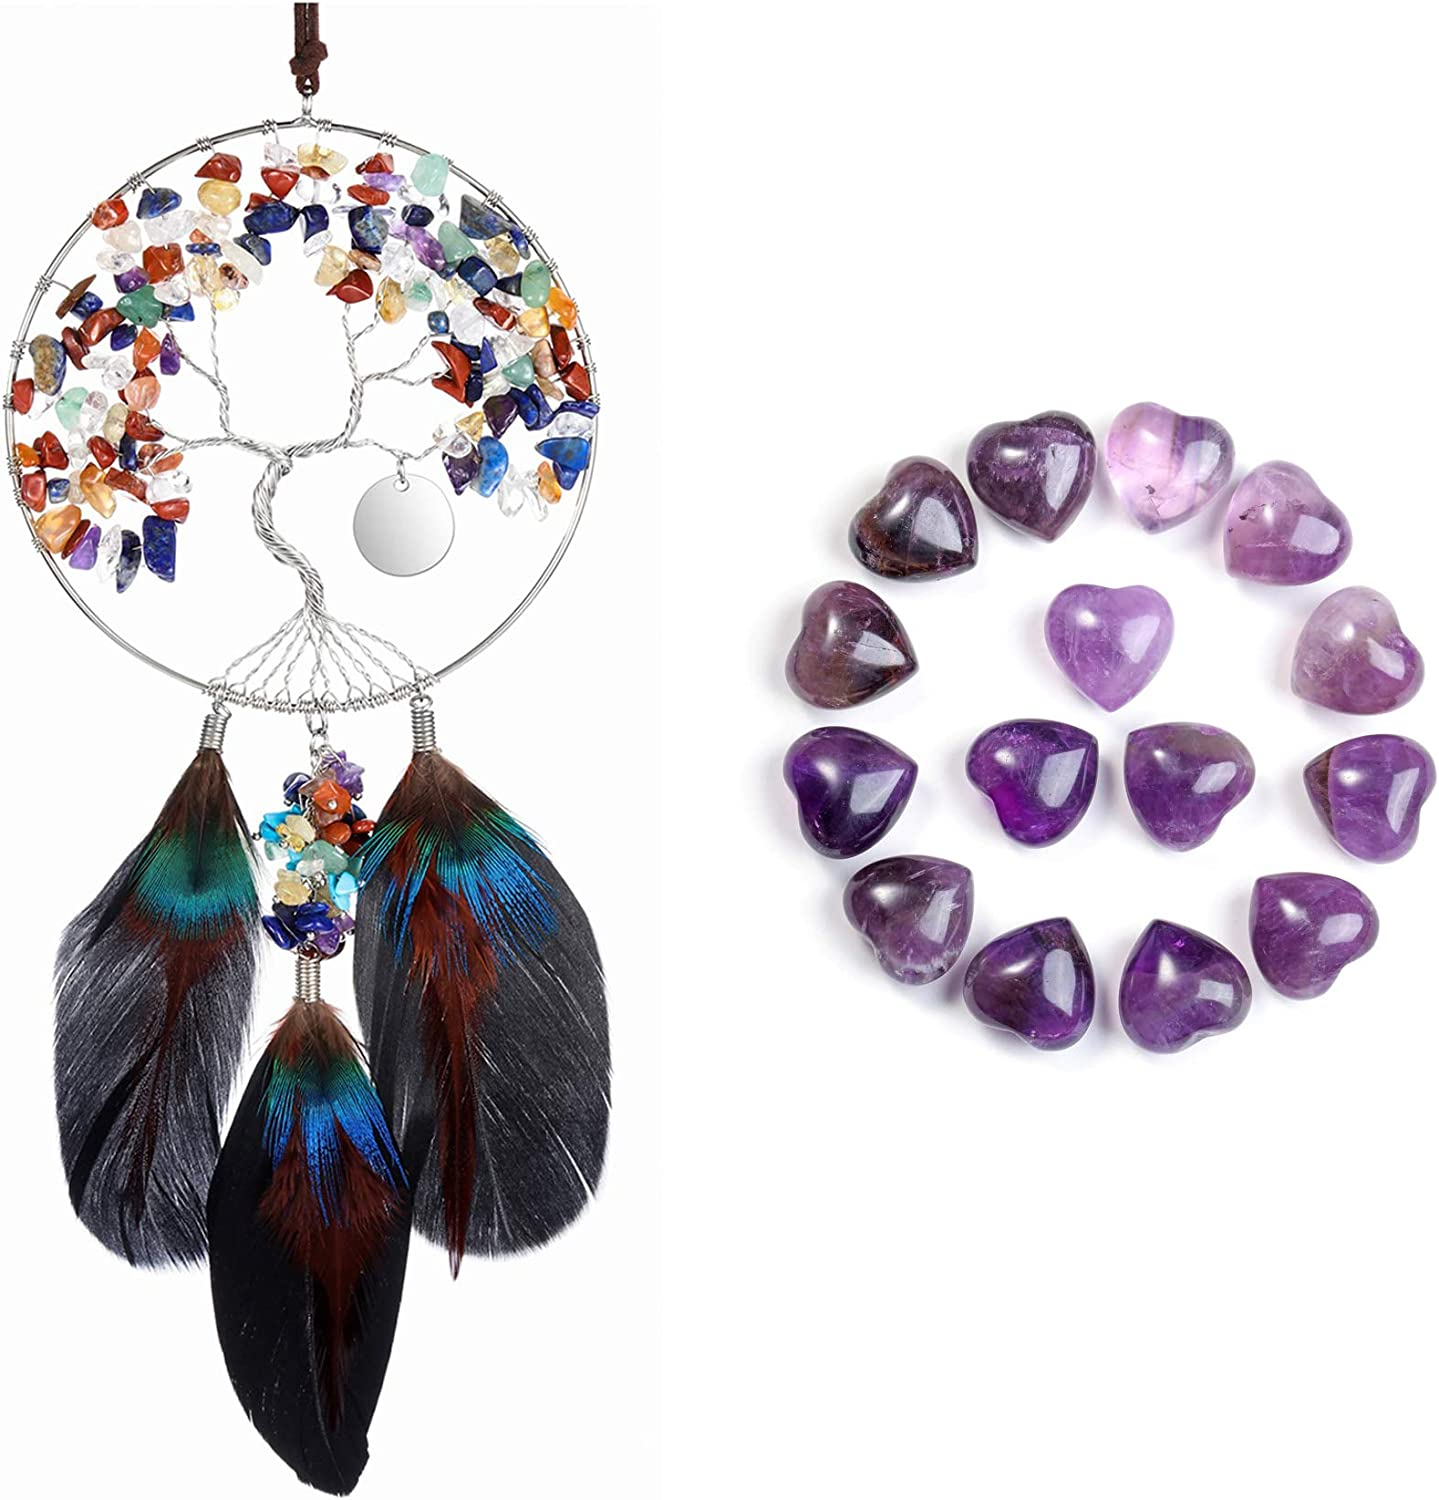 CrystalTears 7 Chakra Crystal Dream Catcher Hanging Ornament Bundle with 15pcs Amethyst Crystal Heart Stones(2 Items)